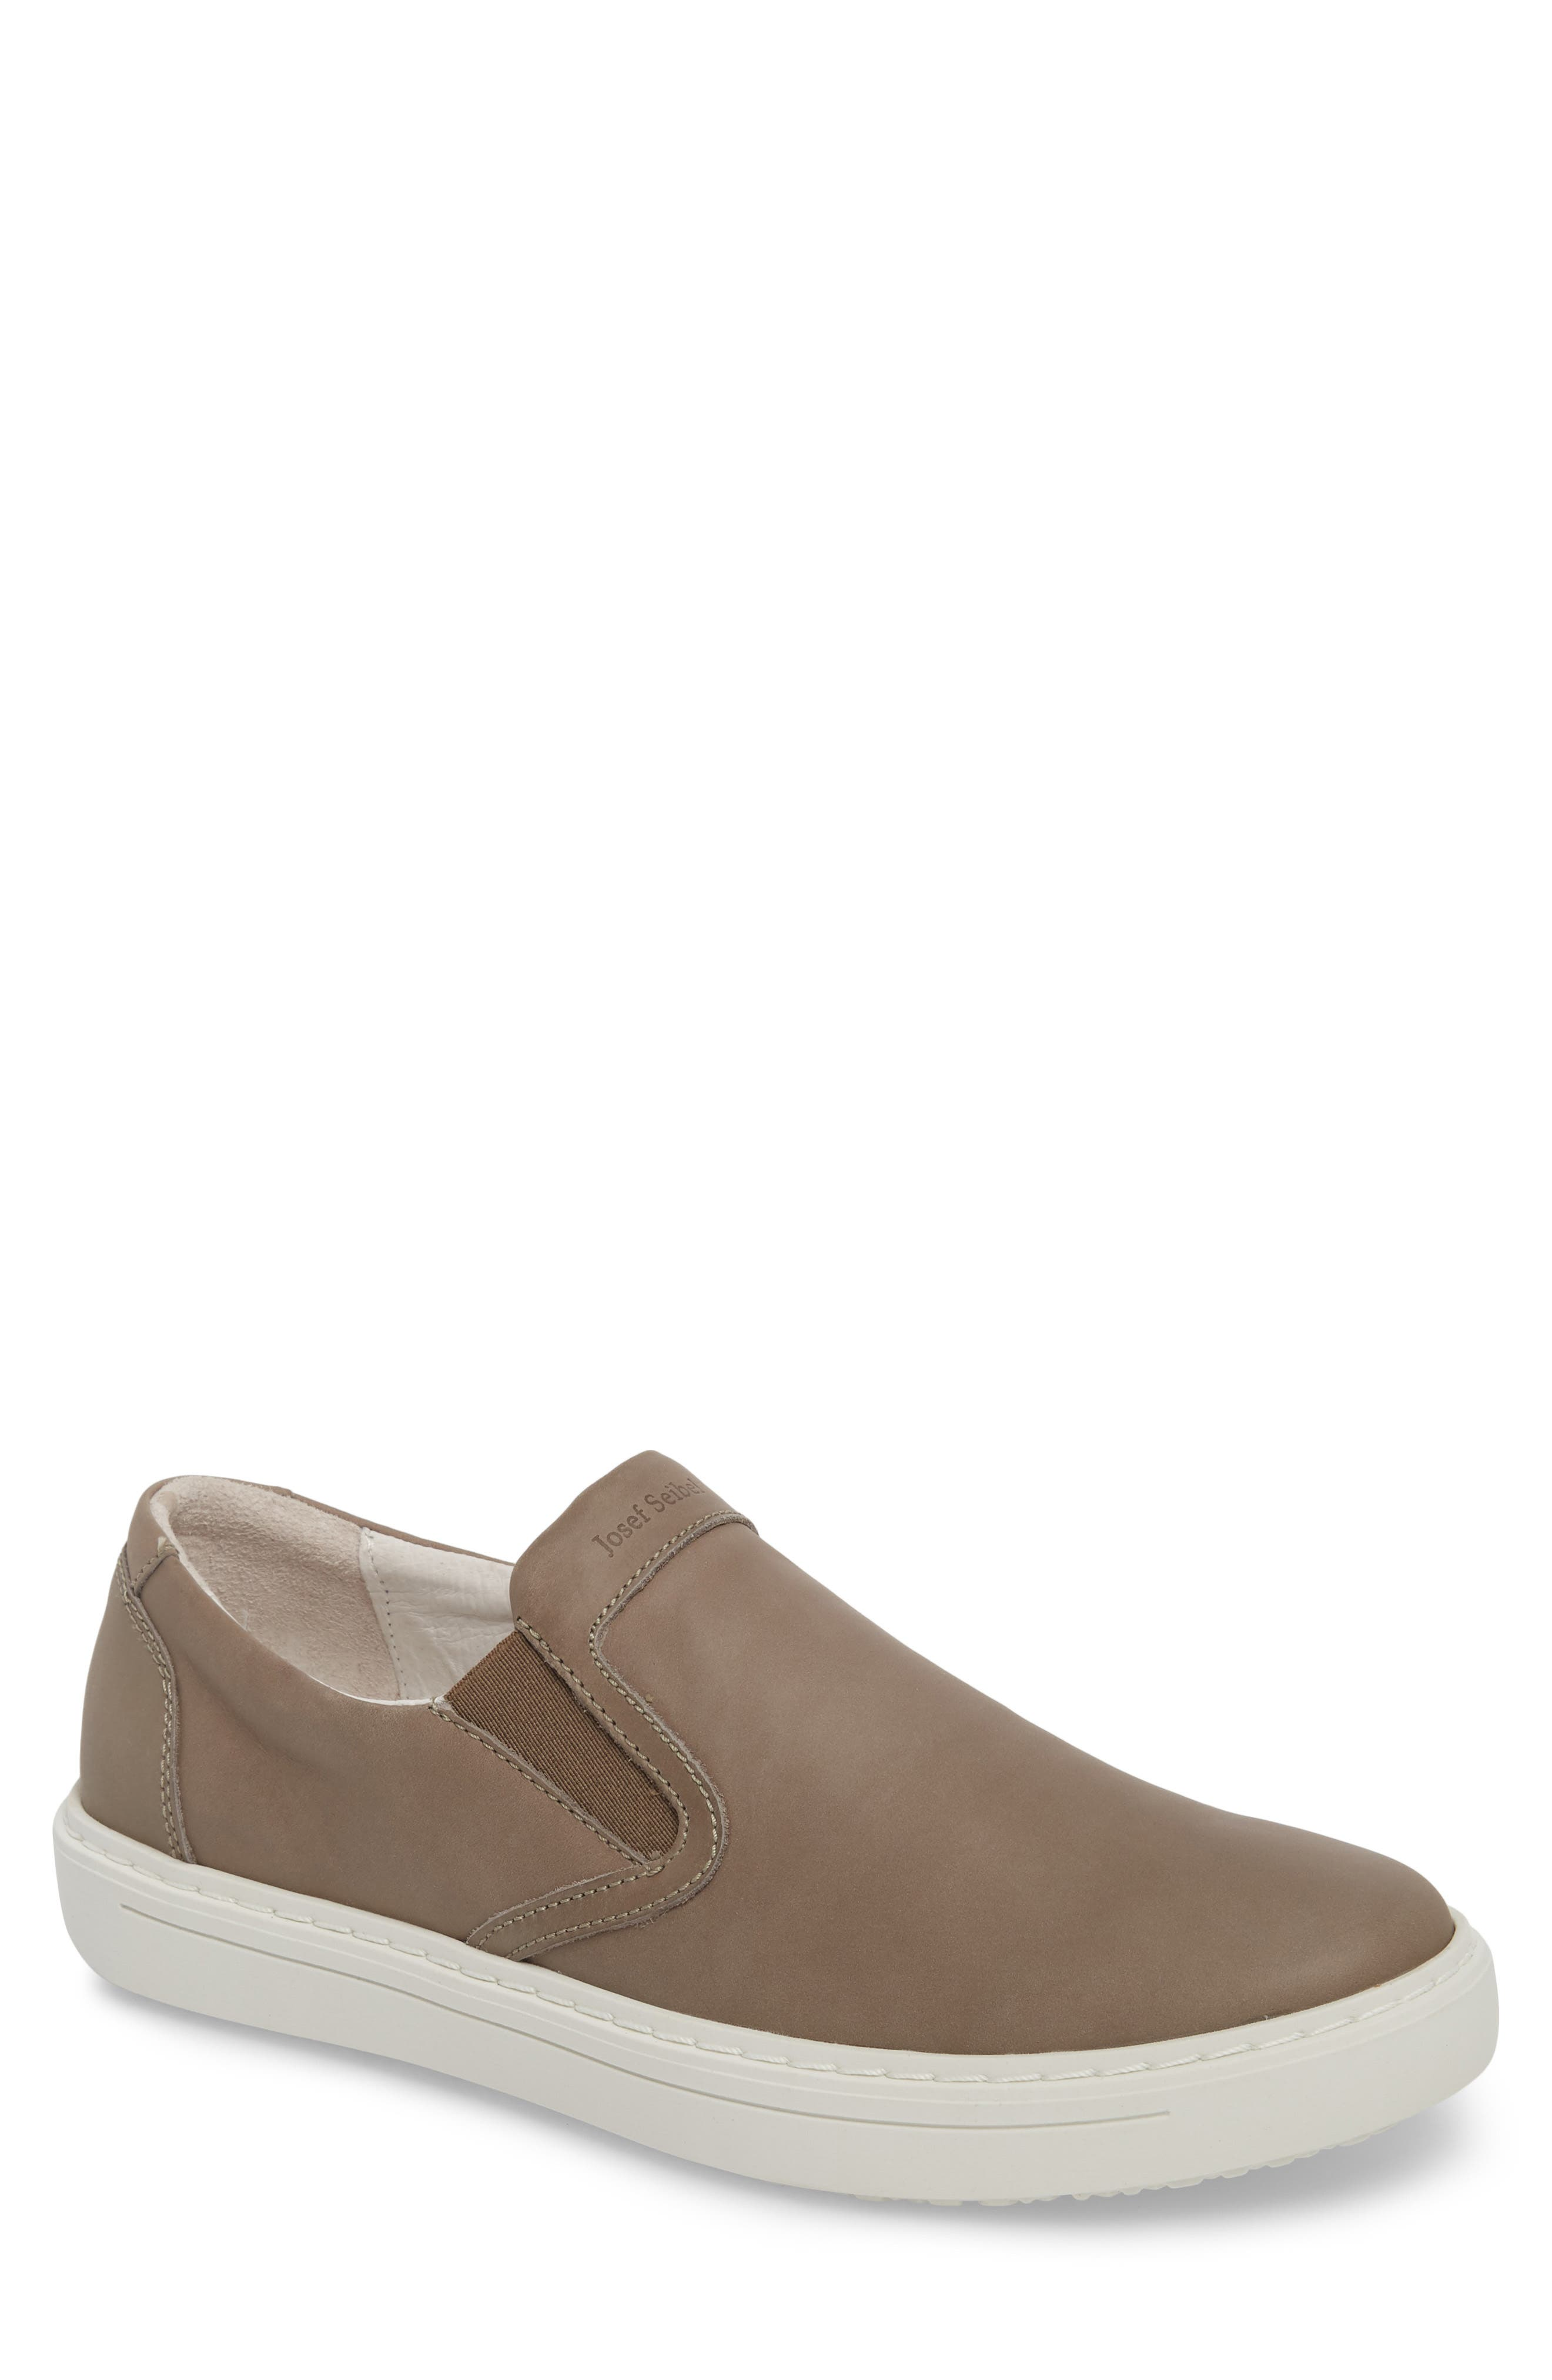 Quentin 15 Slip-On Sneaker,                             Main thumbnail 1, color,                             GRAY LEATHER